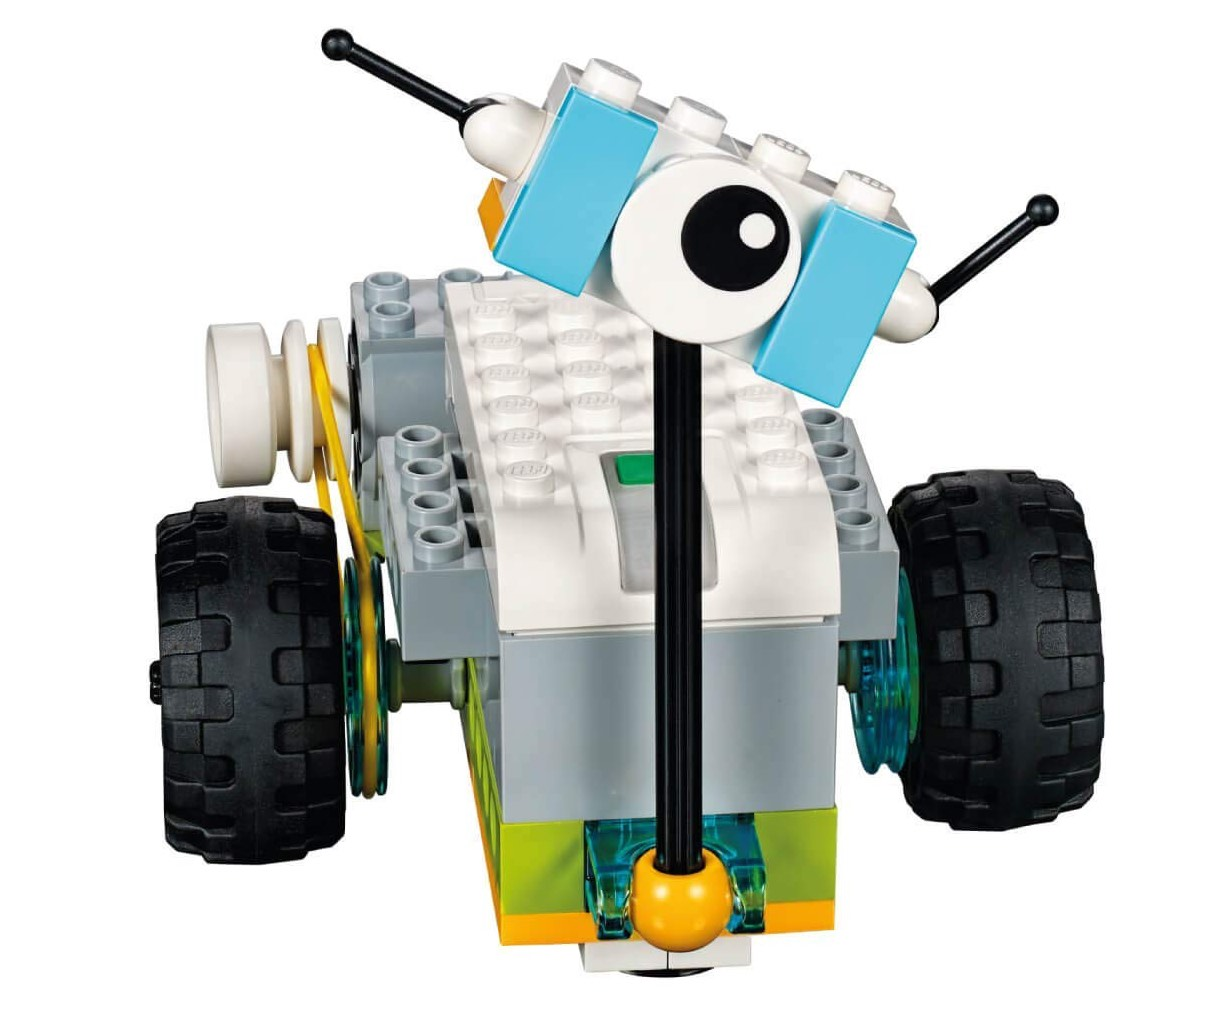 kids educational toys to get from abroad - Lego Wedo education set